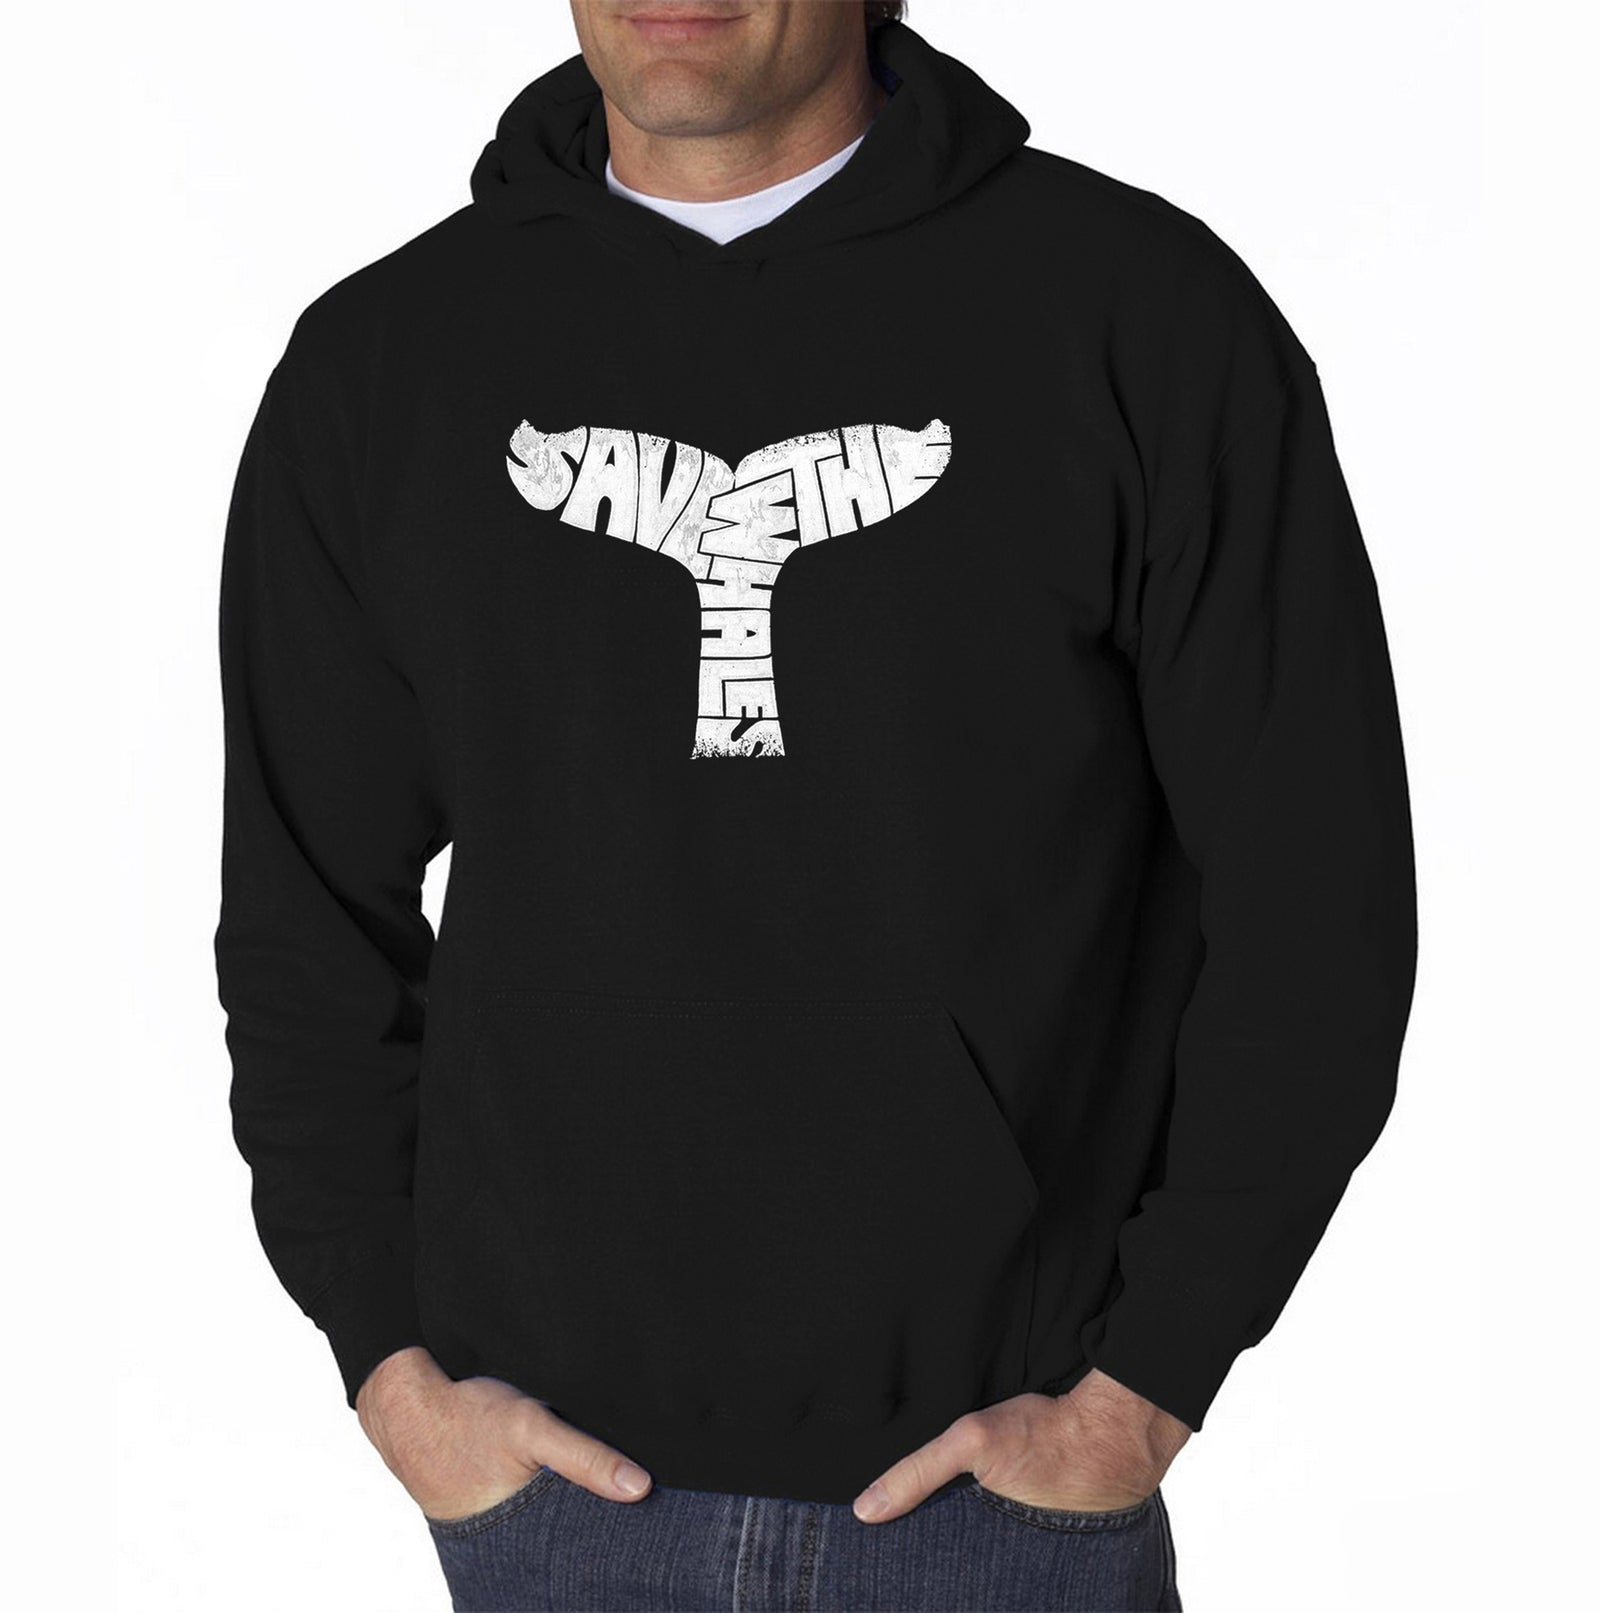 Men's Hooded Sweatshirt - SAVE THE WHALES